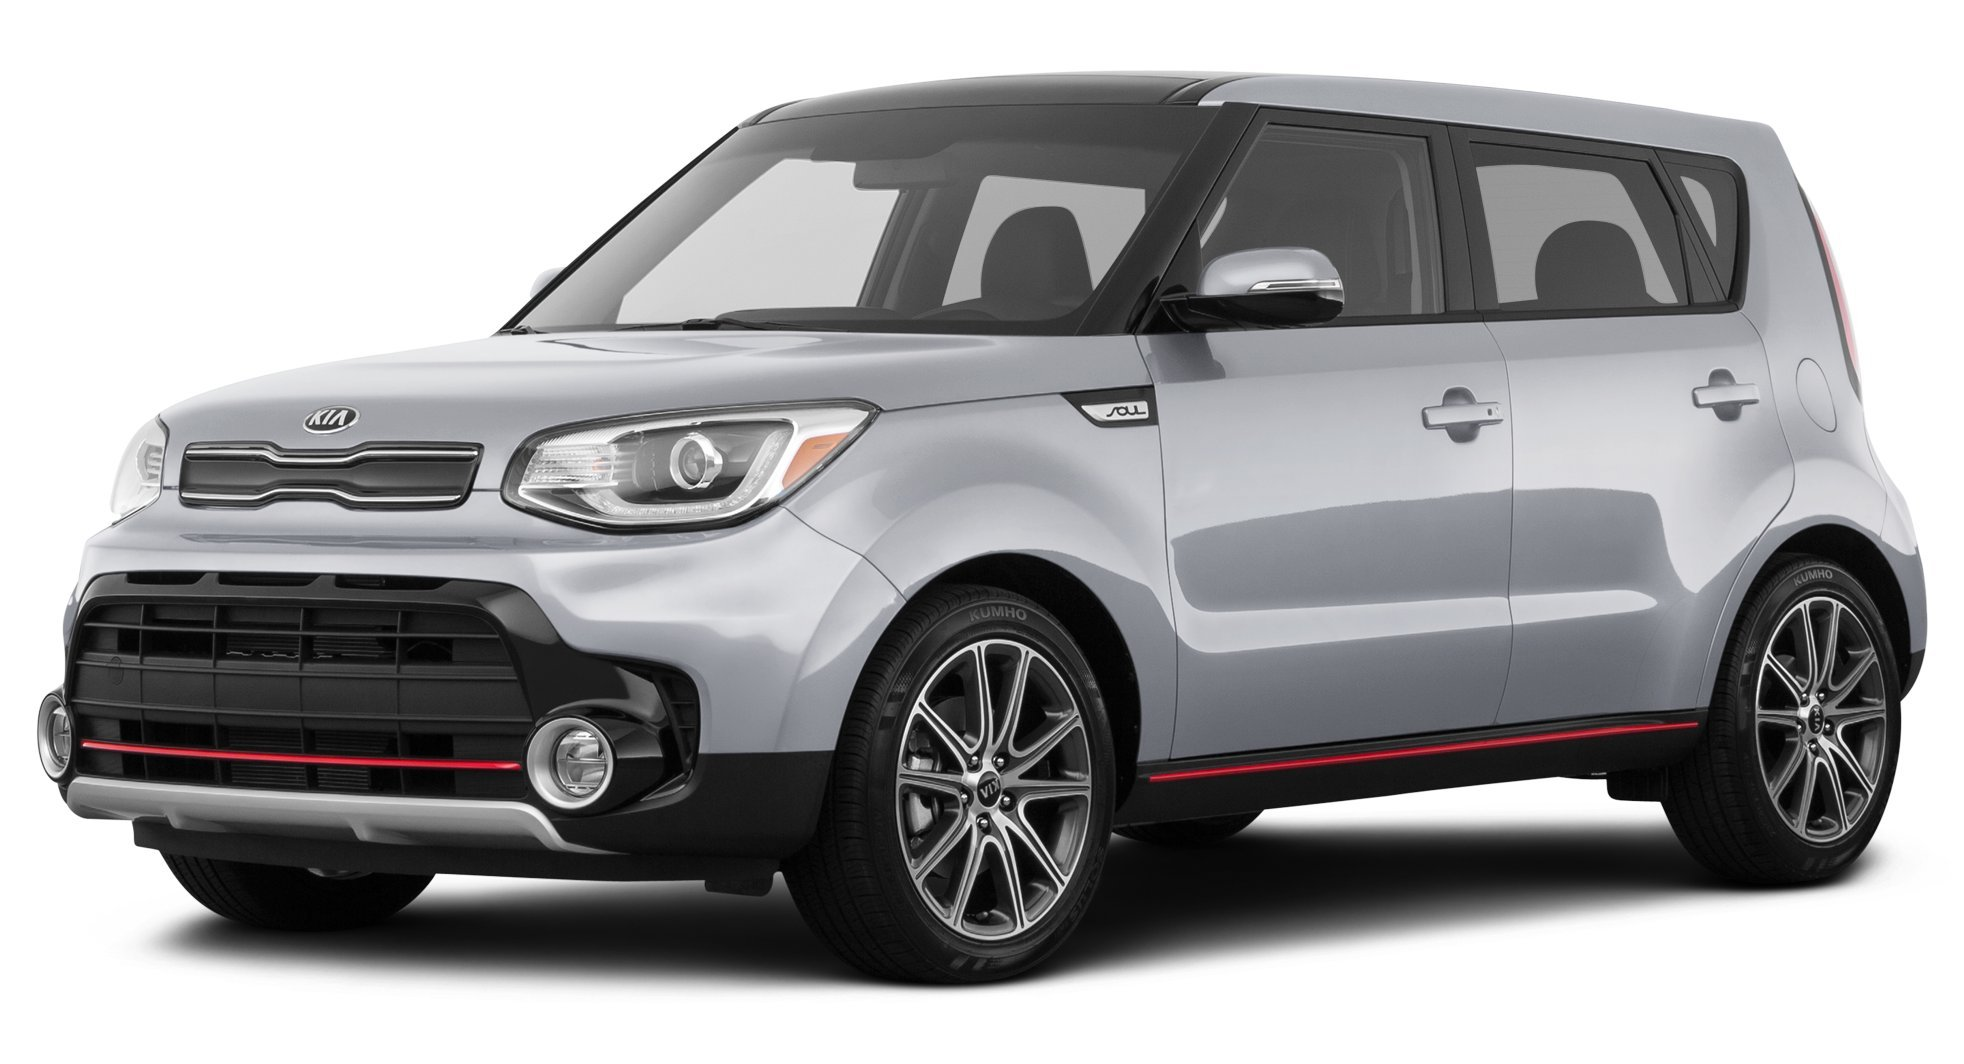 Kia Soul: Good braking practices